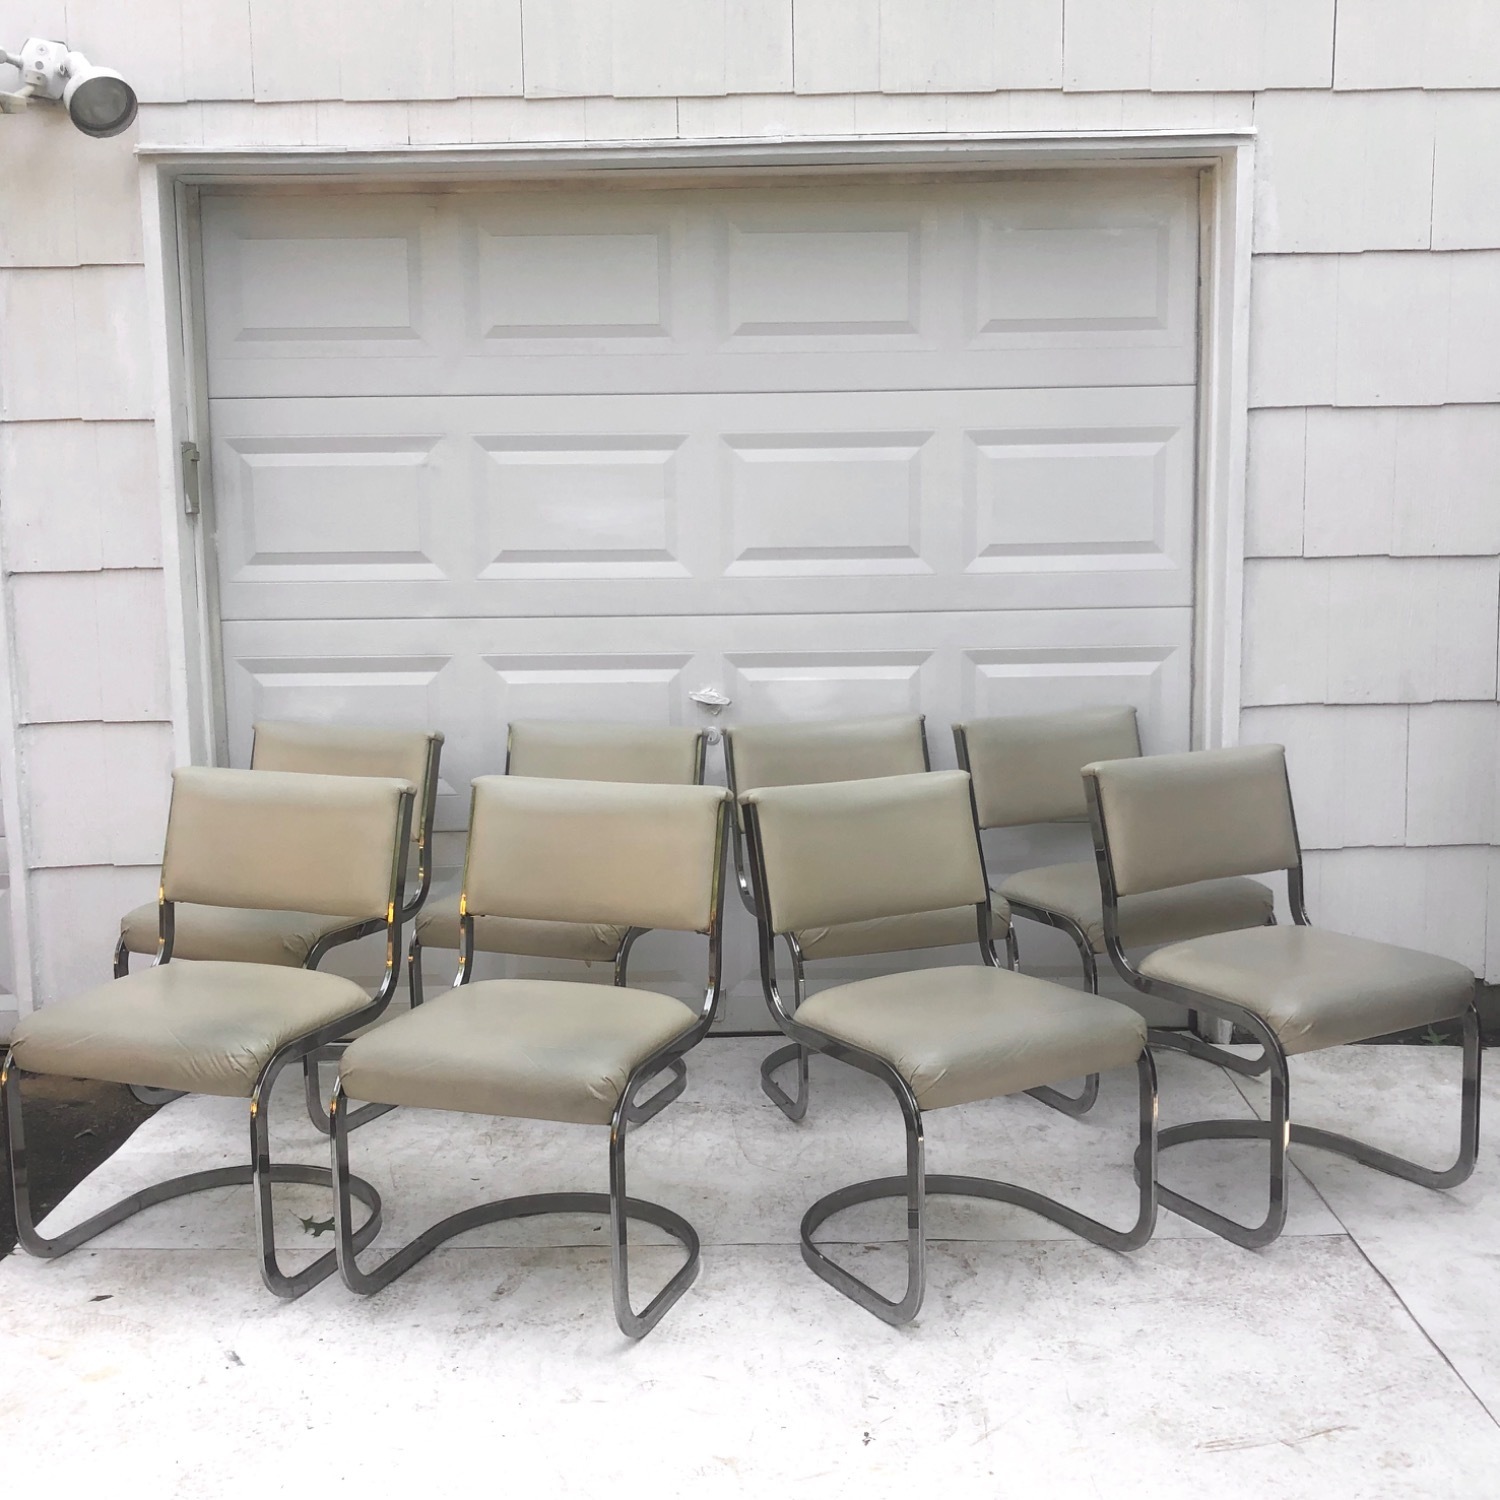 Vintage Modern Dining Chairs Set of 8 - image-1